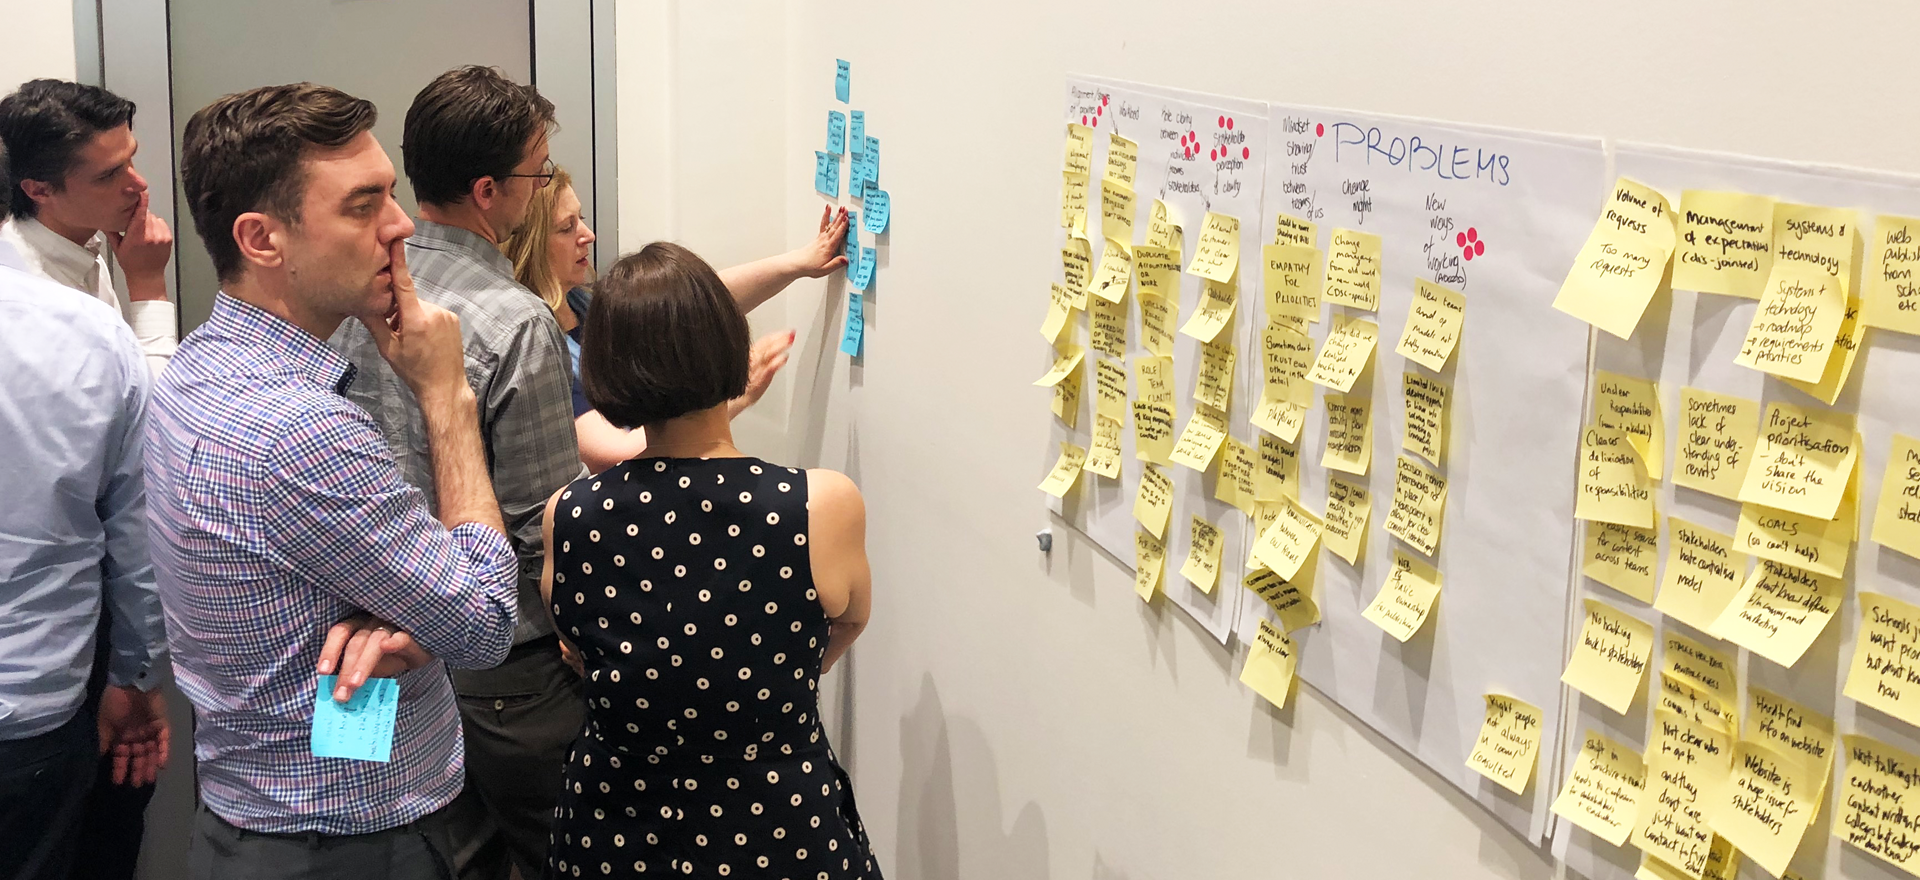 How to Decide on The Best Idea in a Design Sprint